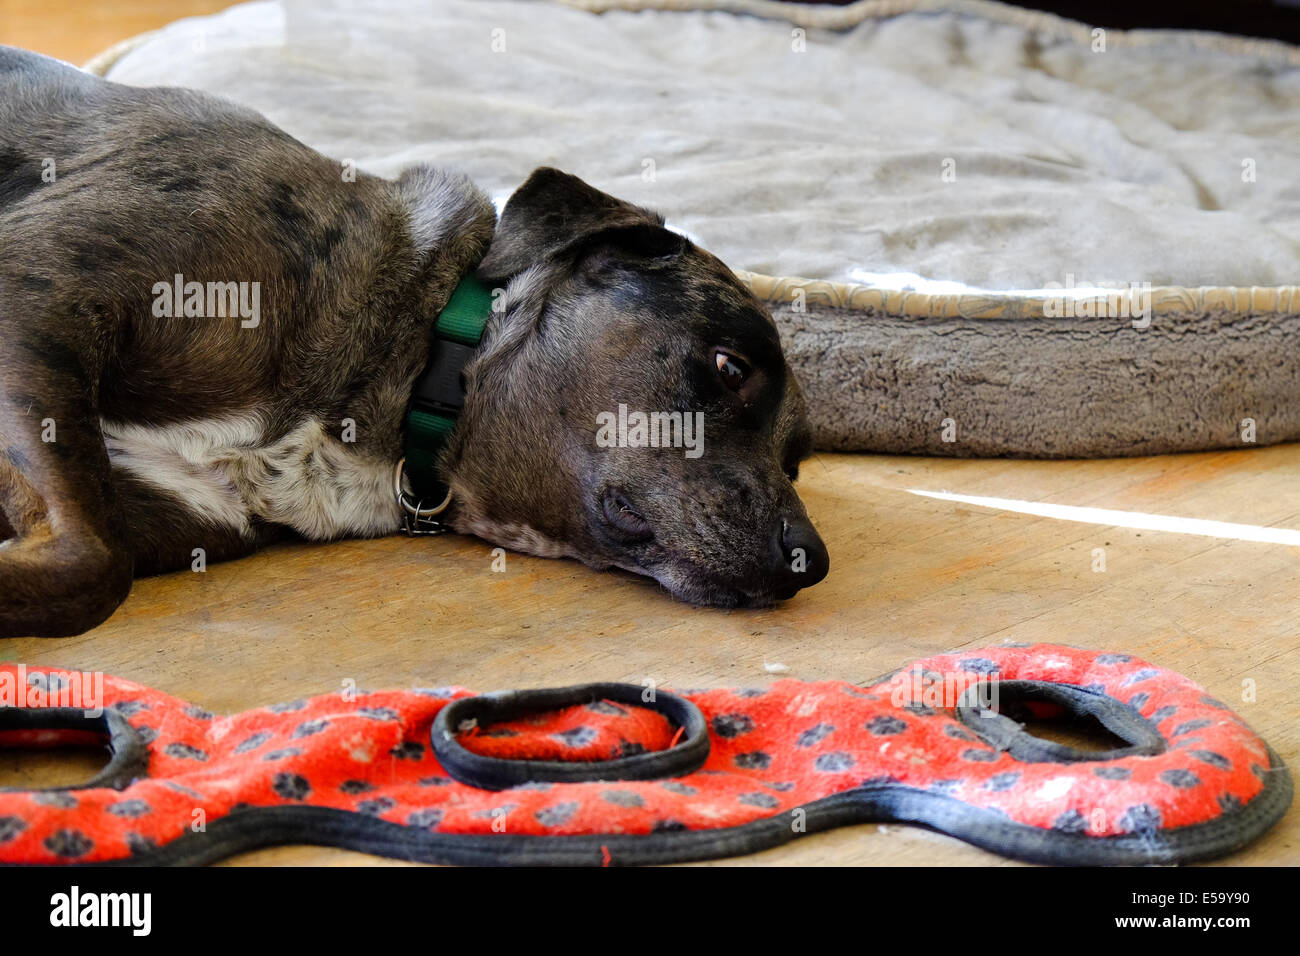 A dog lays on the floor next to his toy and dog bed. - Stock Image